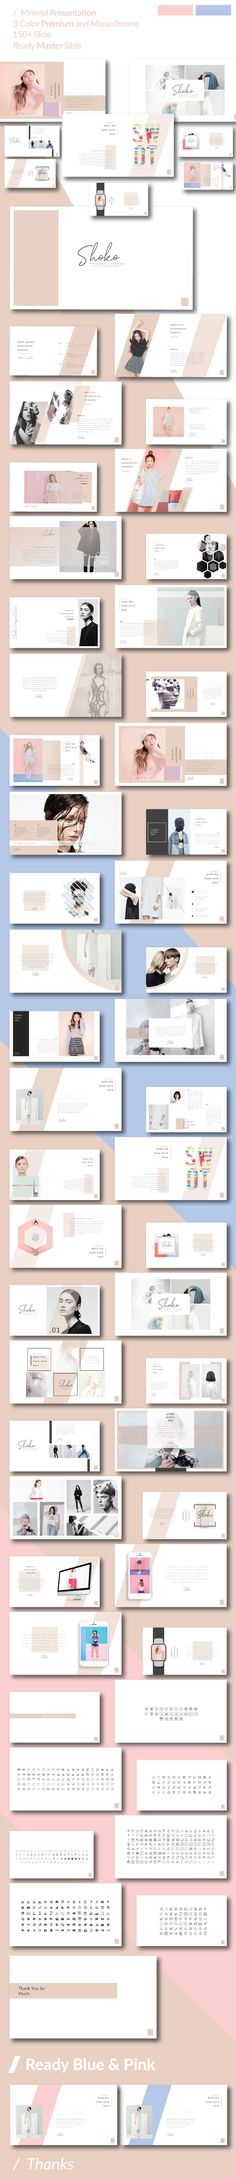 Shoko Minimal Powerpoint Template Business PowerPoint Templates - Keynote - Ideas of Keynote - Shoko Minimal Powerpoint Template Business PowerPoint Templates Web Design, Layout Design, Graphic Design, Presentation Layout, Presentation Templates, Business Presentation, Presentation Boards, Business Powerpoint Templates, Keynote Template